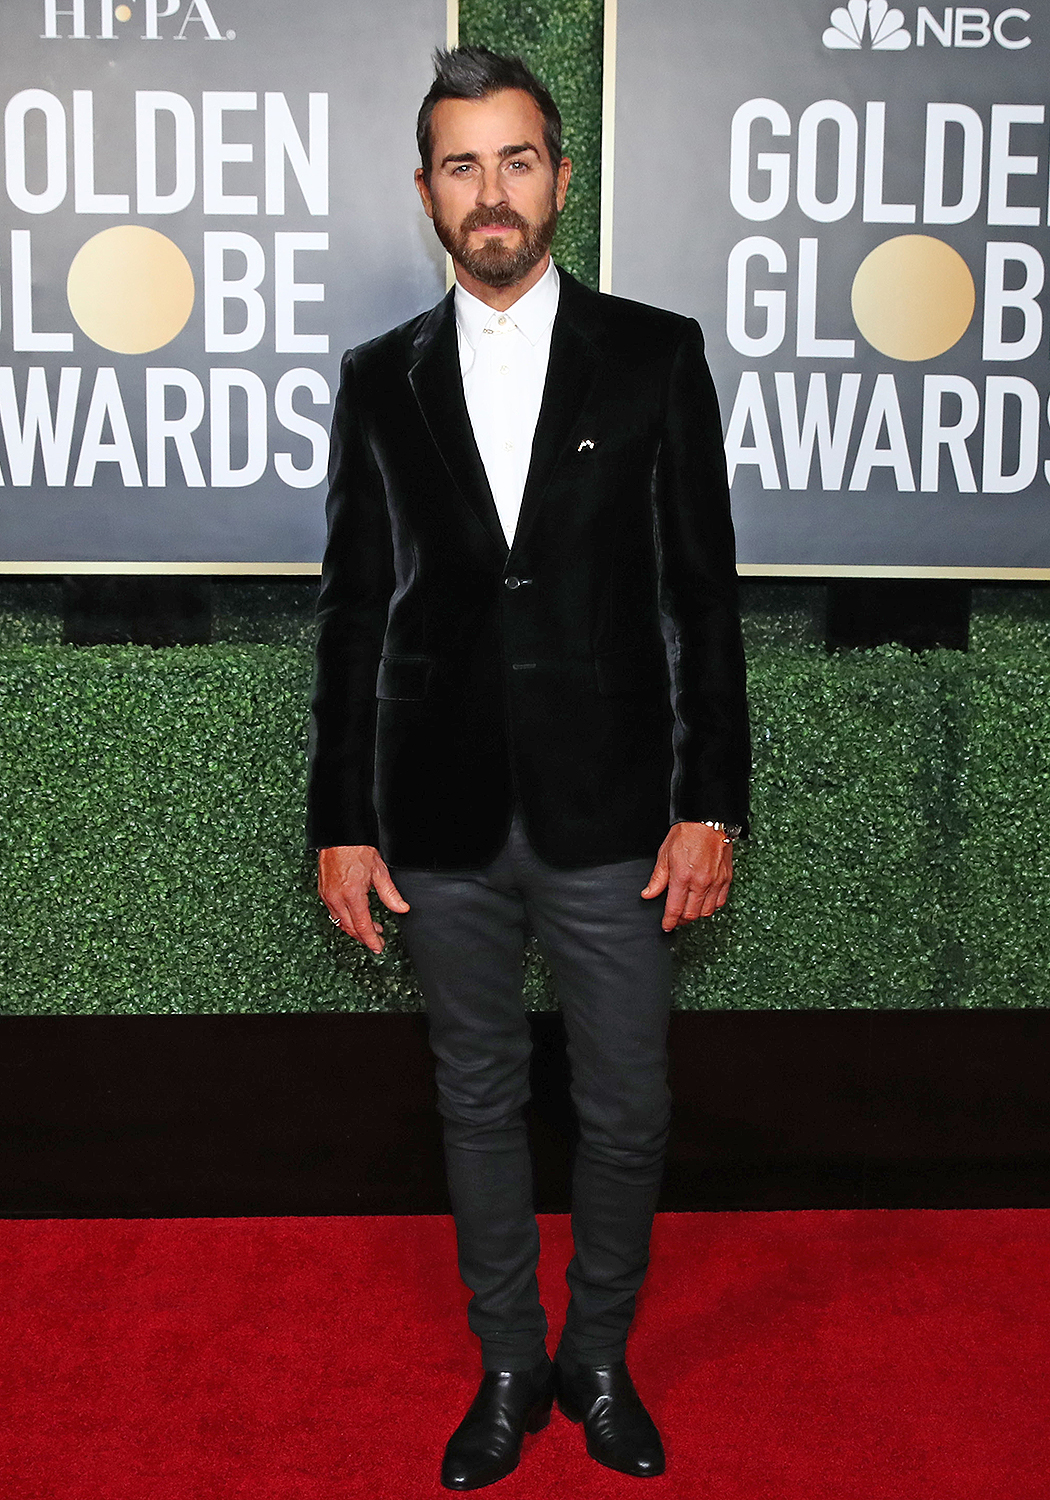 NEW YORK, NEW YORK: 78th Annual GOLDEN GLOBE AWARDS -- Pictured: Justin Theroux attends the 78th Annual Golden Globe Awards held at The Rainbow Room and broadcast on February 28, 2021 in New York, New York